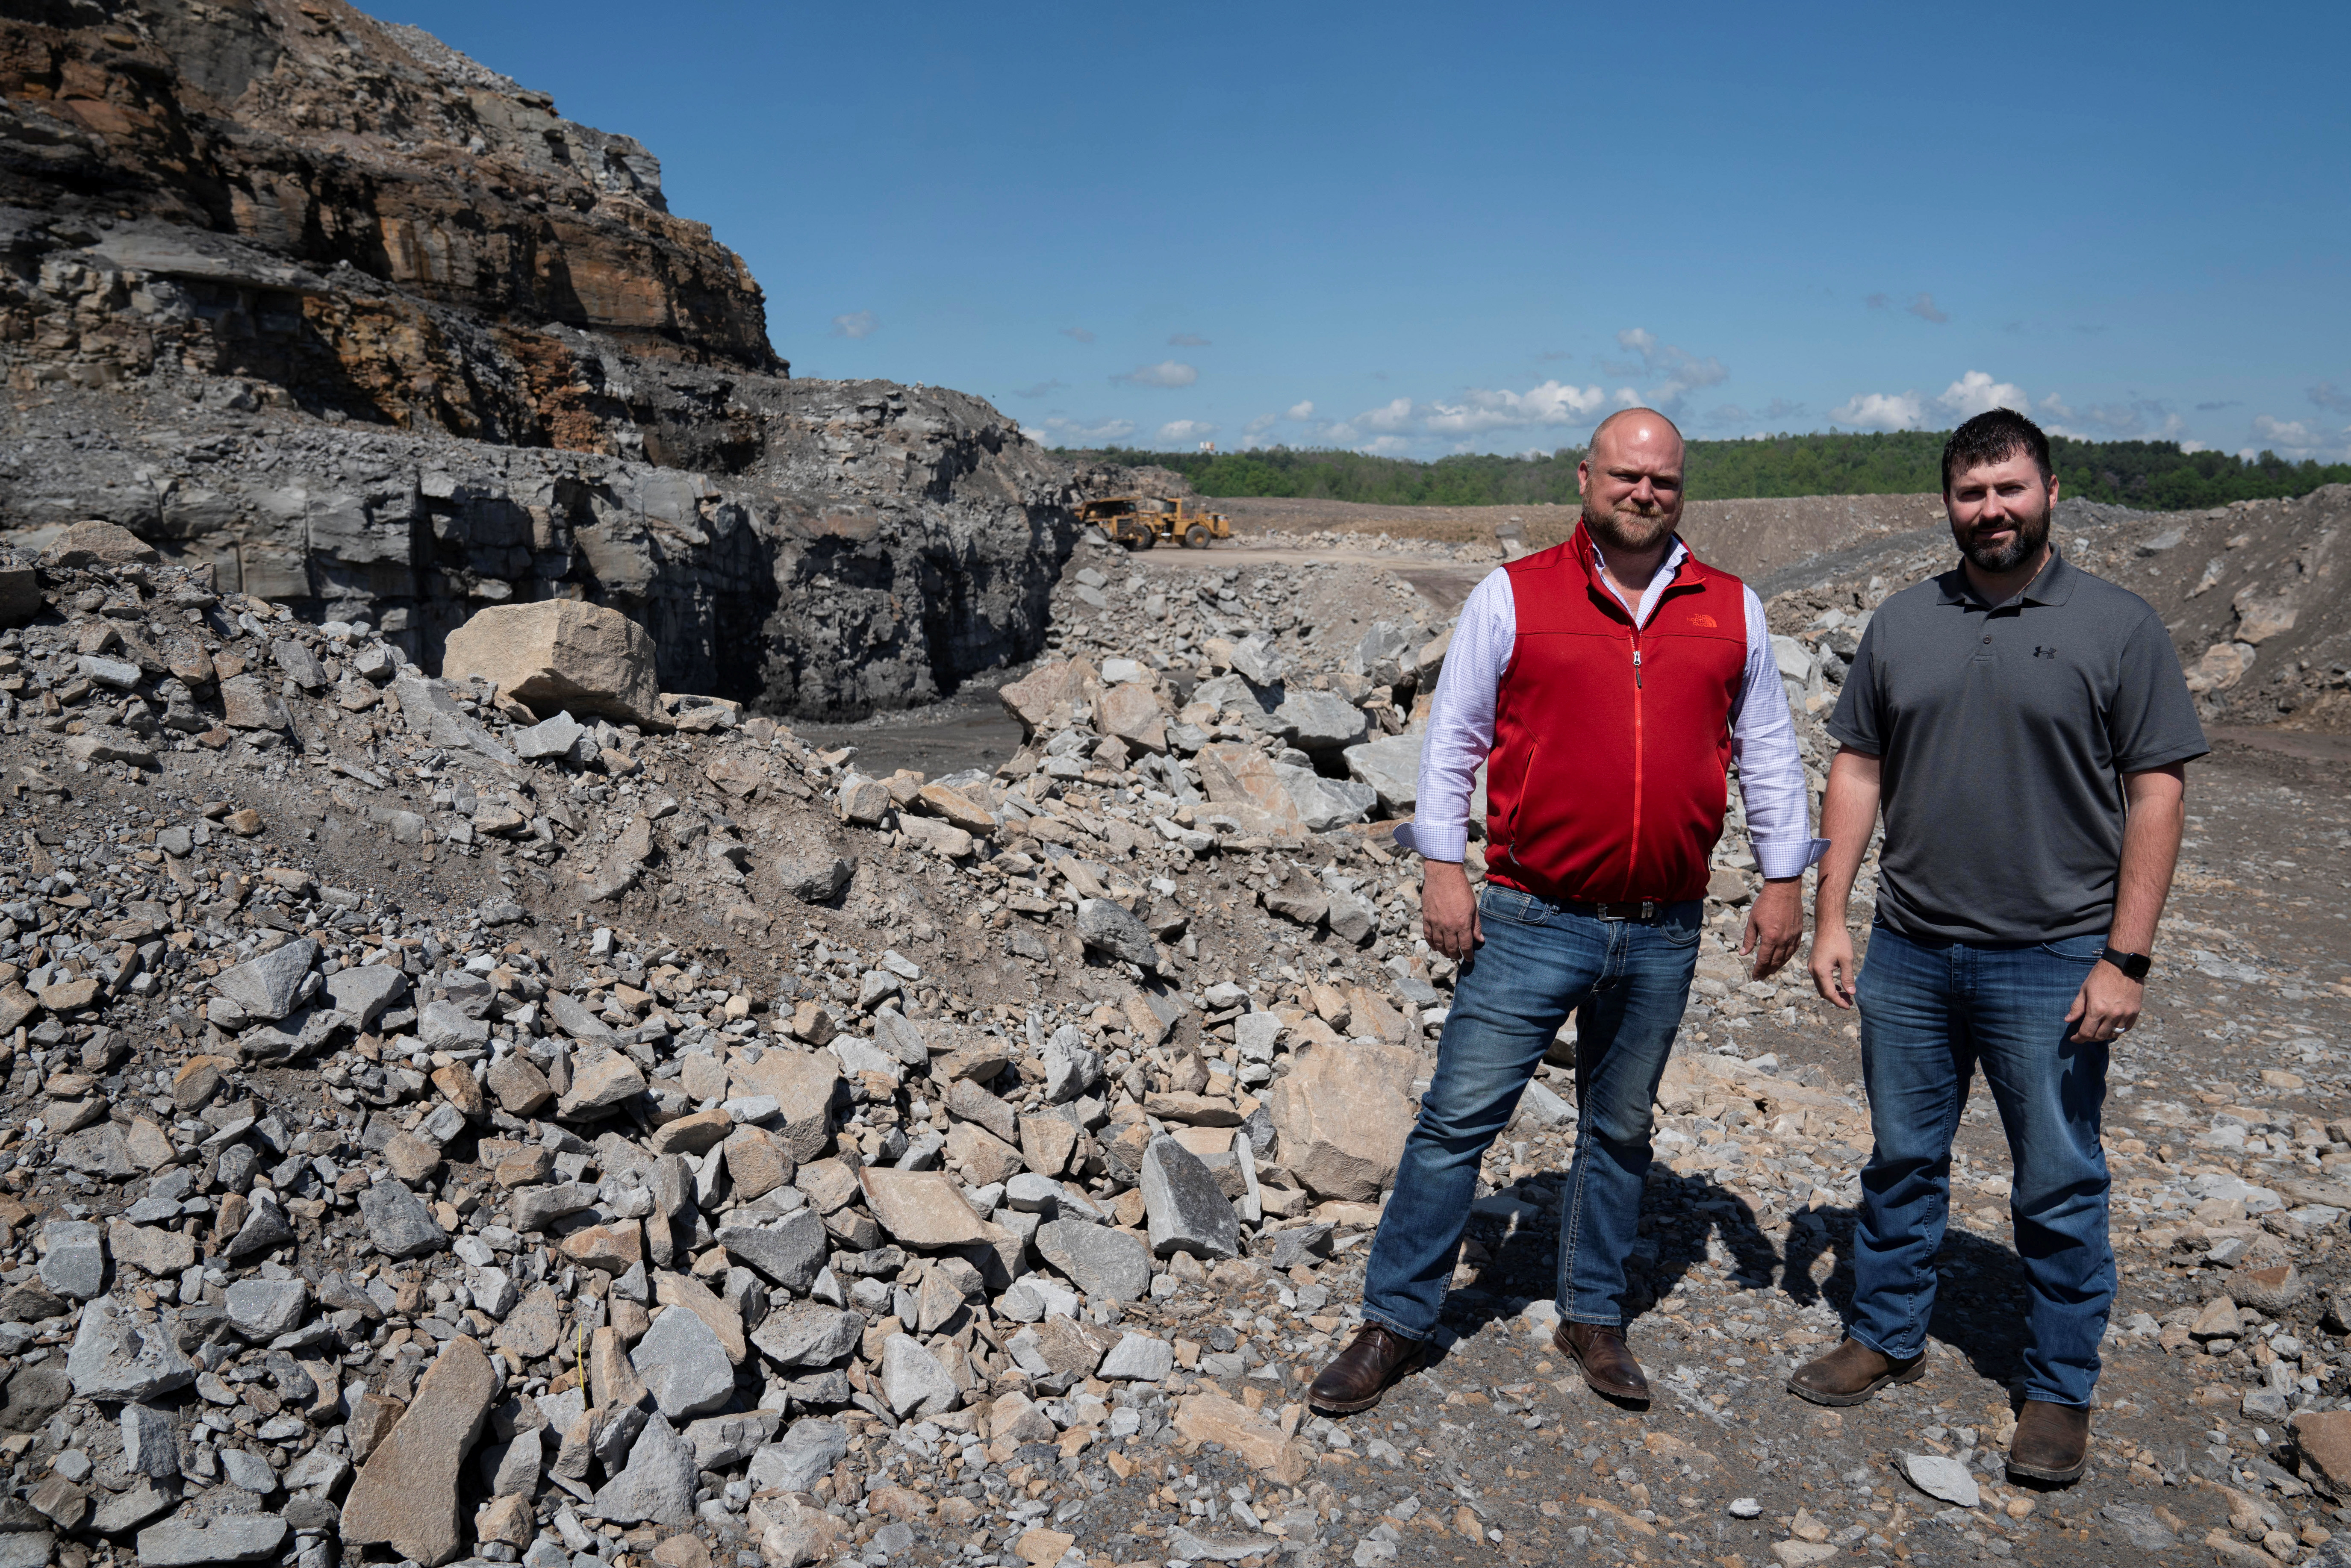 CM Mining Managing Partner Dale Murray (L) and Mining Engineer Chad Damron pose for a photo in an active coal mine located next to a new solar power plant development site in Hurley, western Virginia, U.S., May 11, 2021.  REUTERS/Dane Rhys